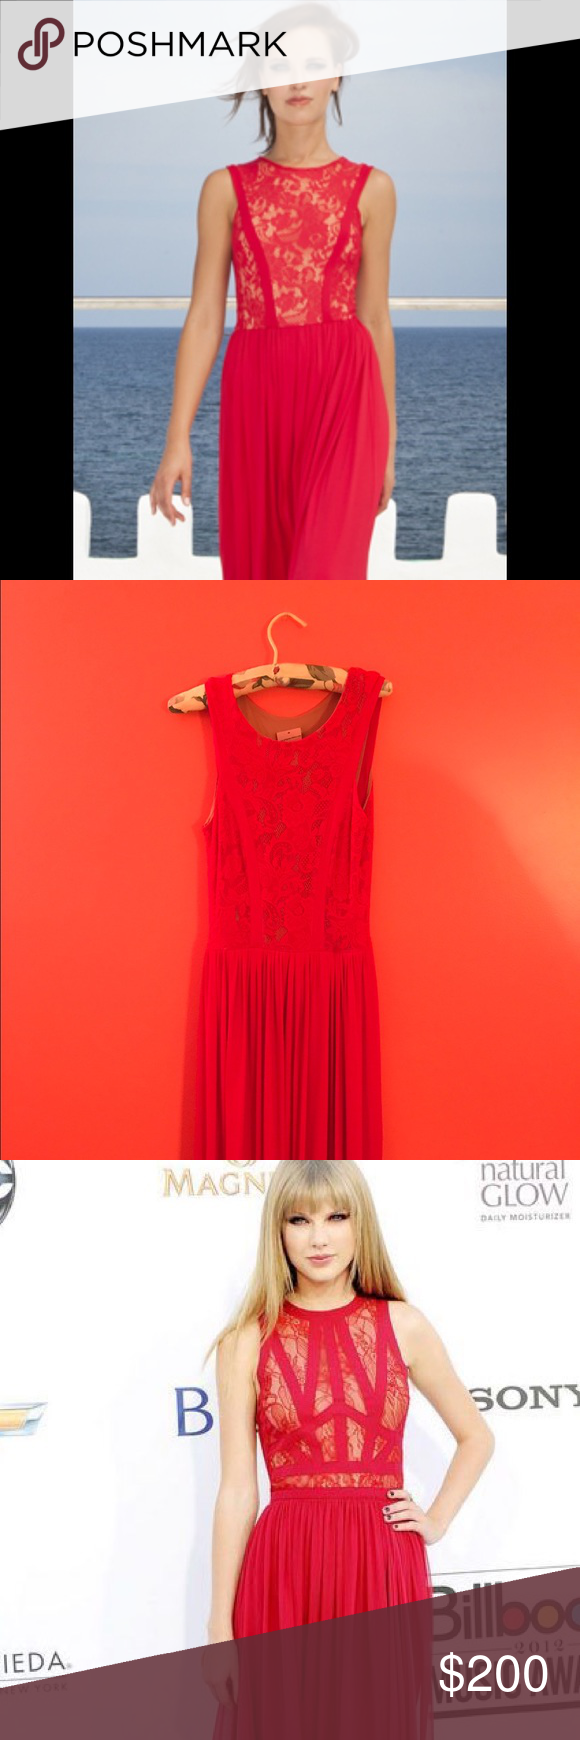 Gorgeous couture red lace dress